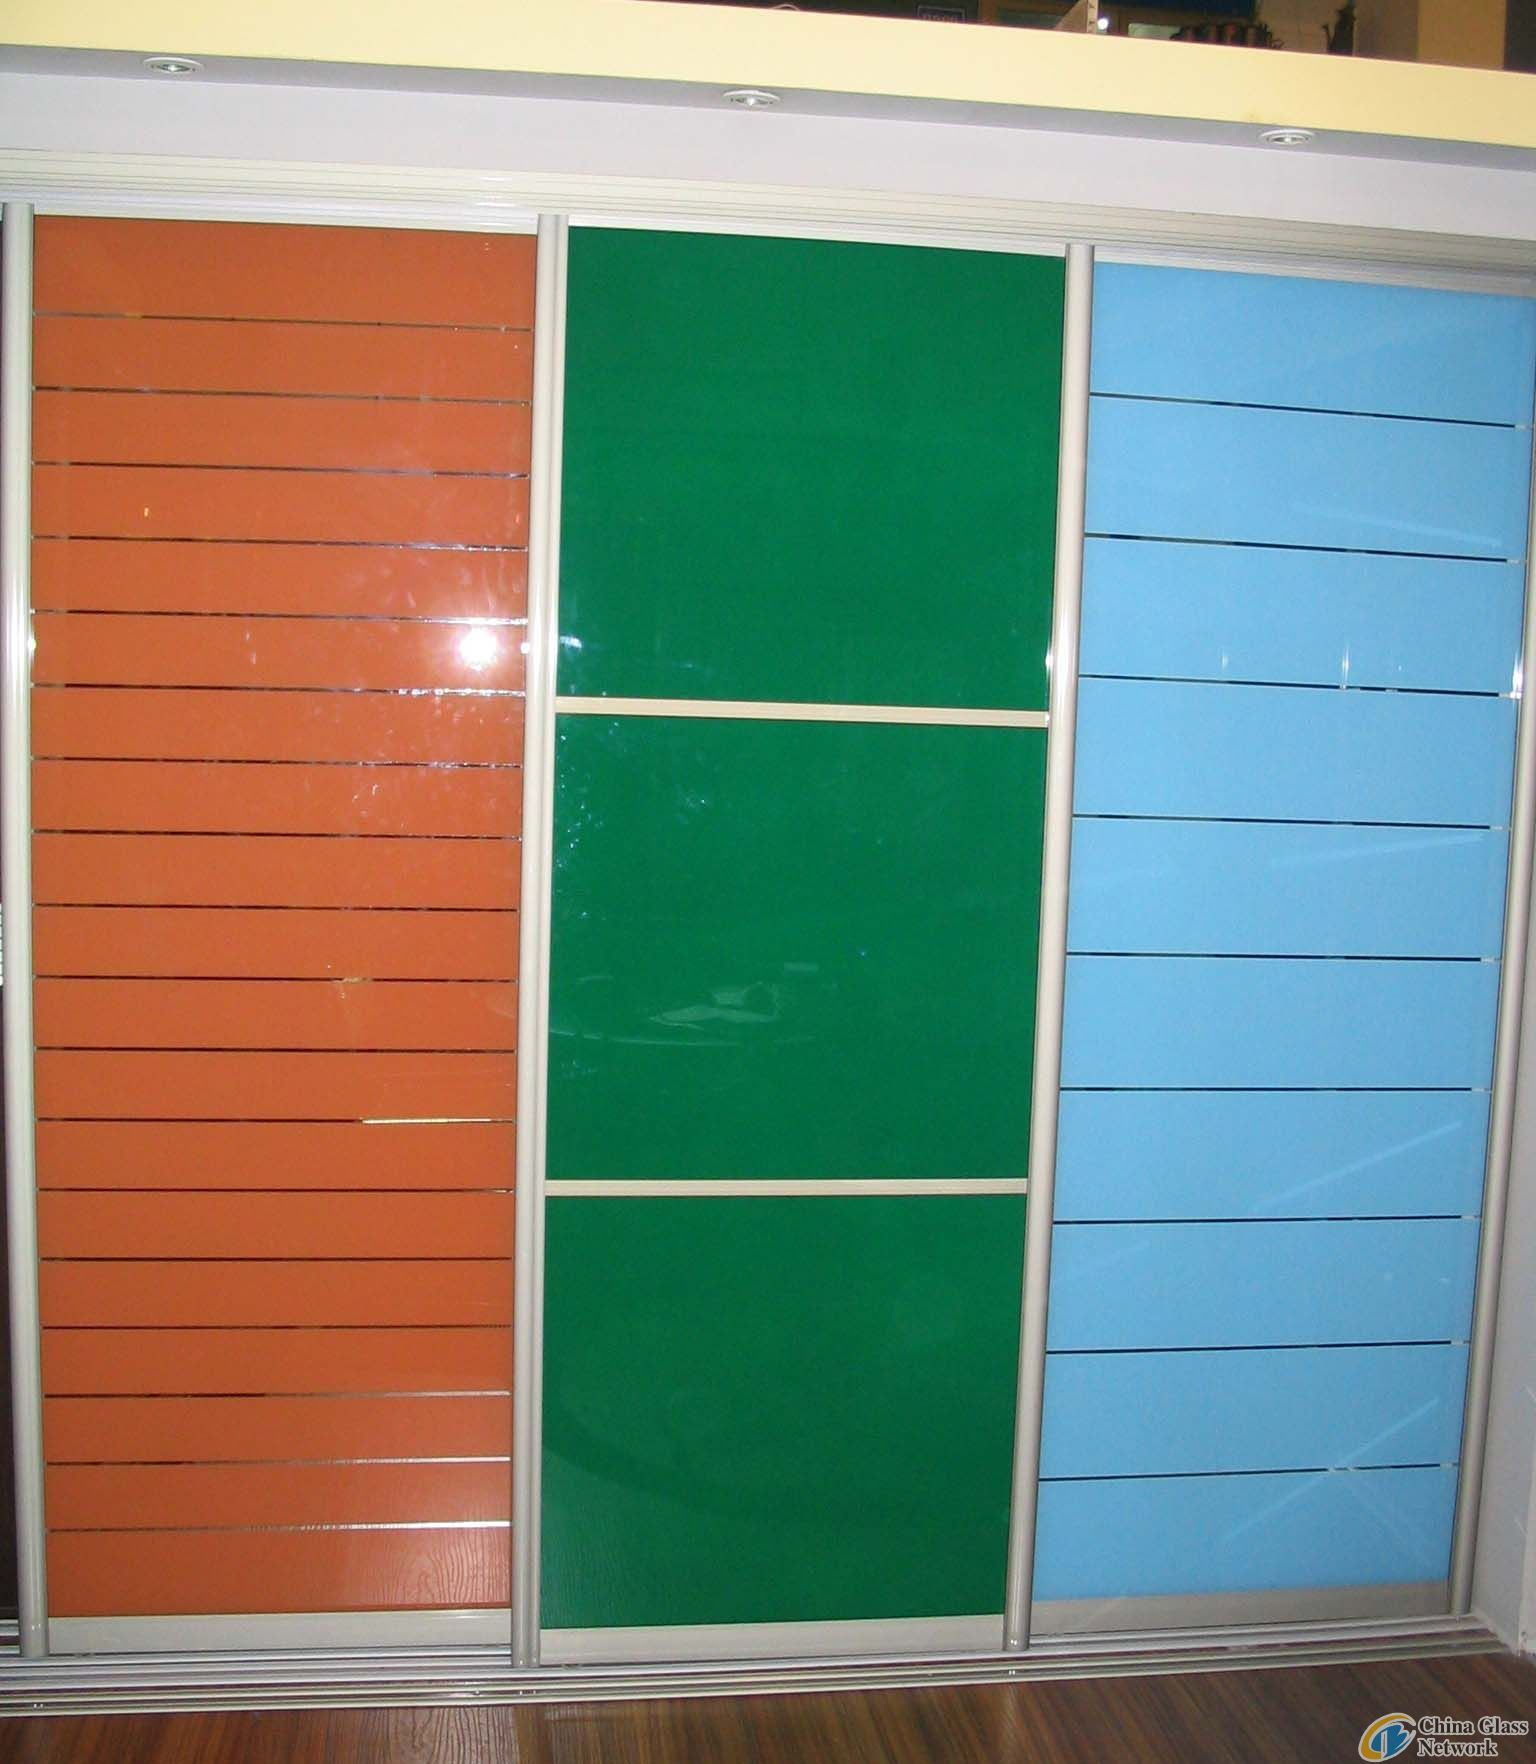 Painted Tempered Glass Cabinet with En12150